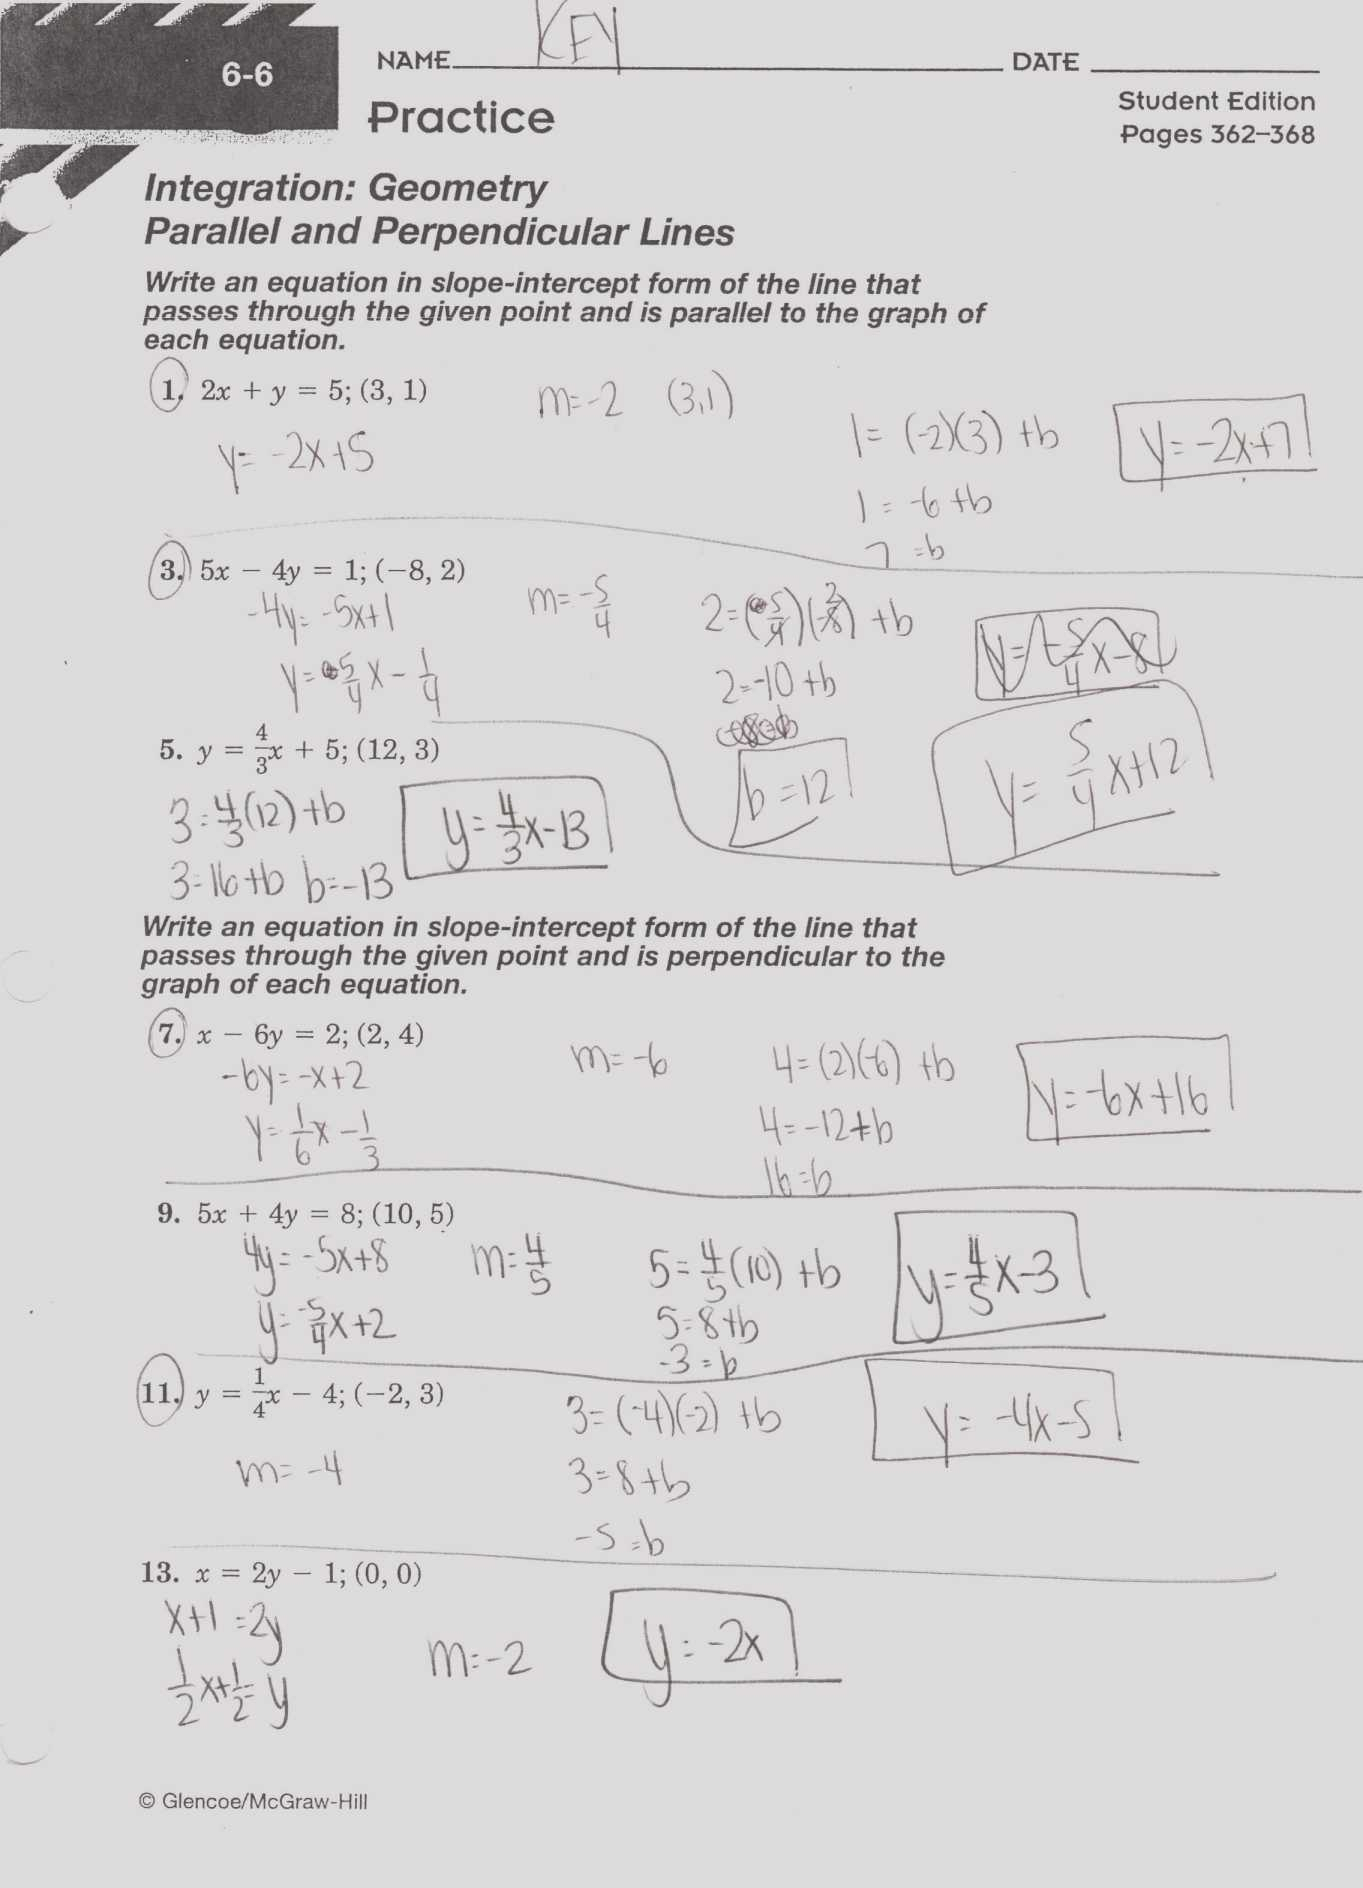 Worksheet Level 2 Writing Linear Equations Worksheet Answers